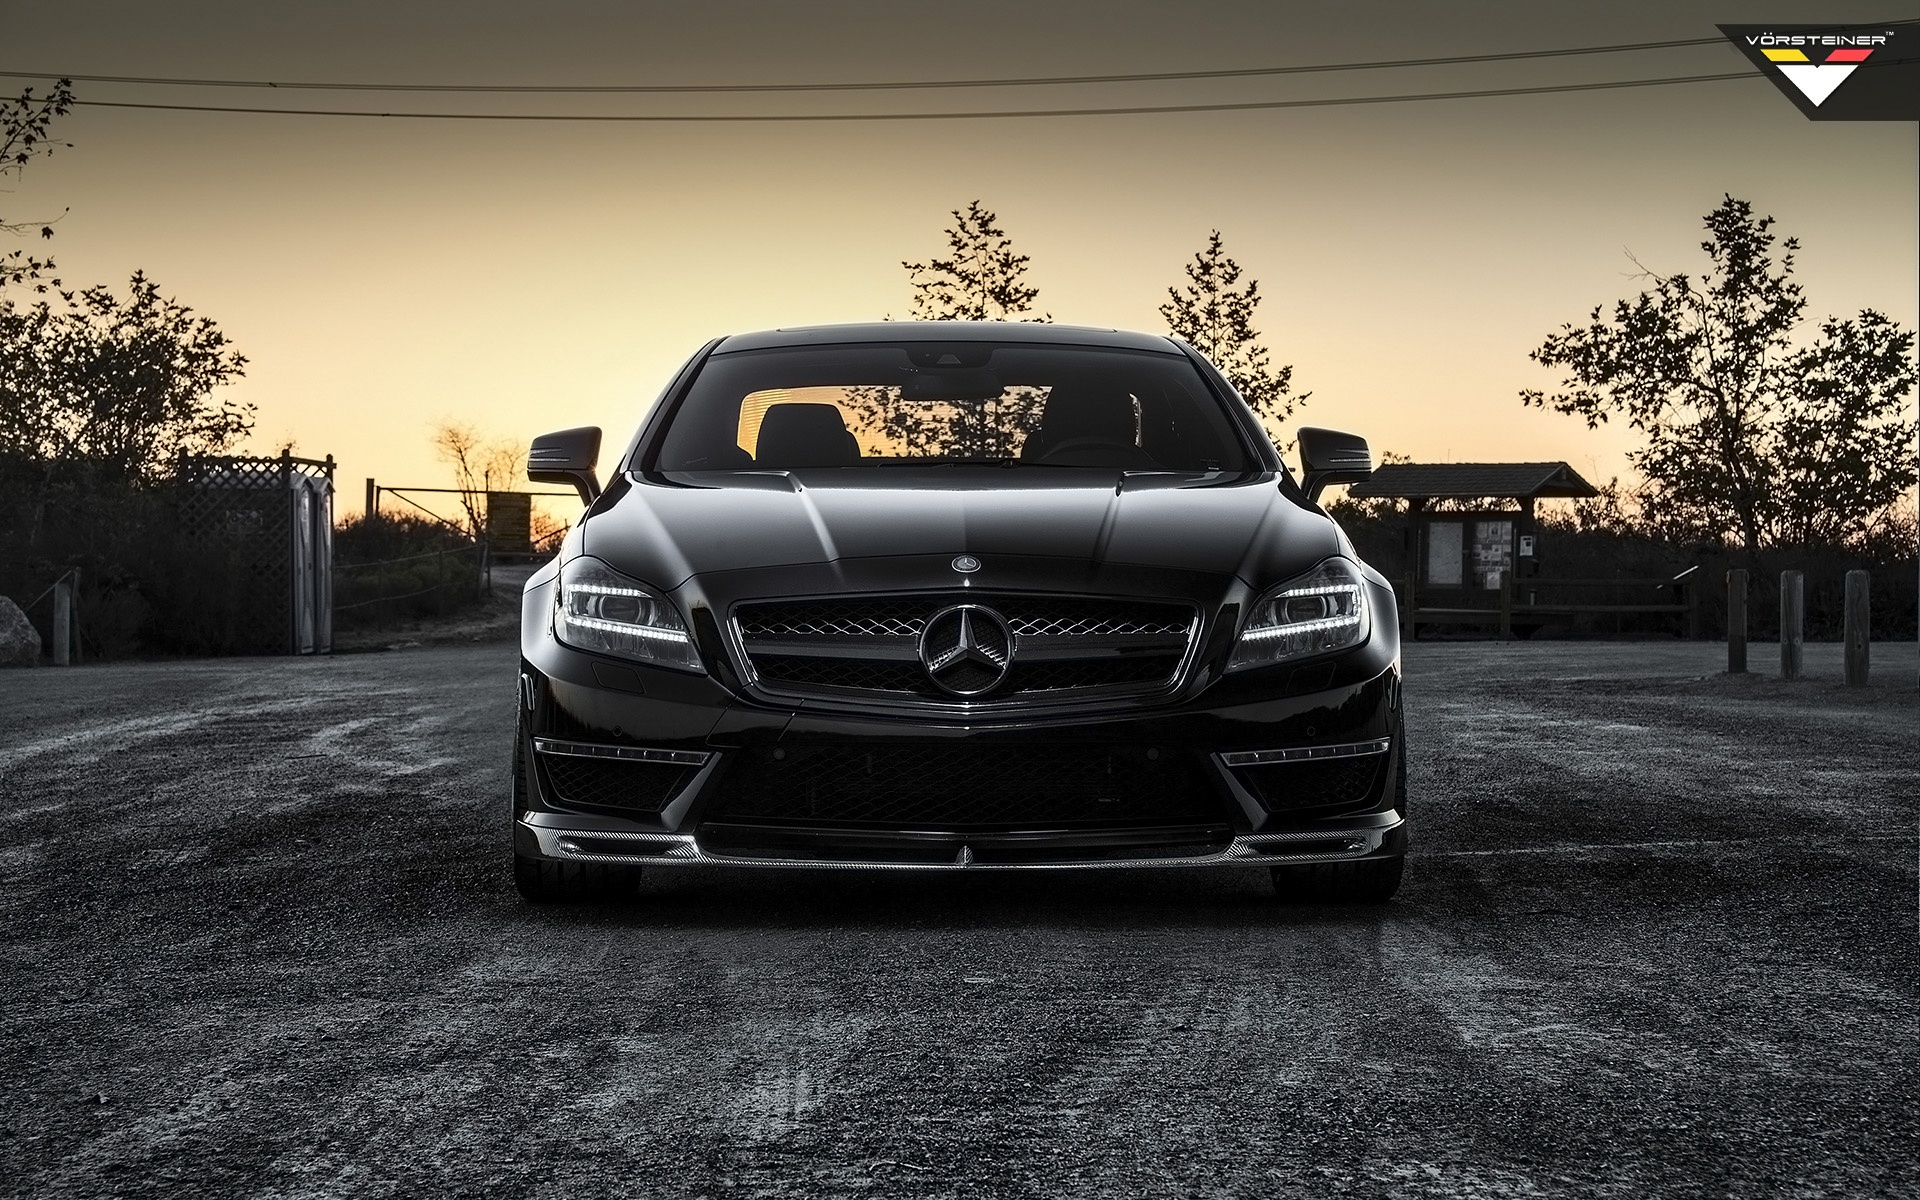 2018 Mercedes Benz CLS 63 AMG photo - 1